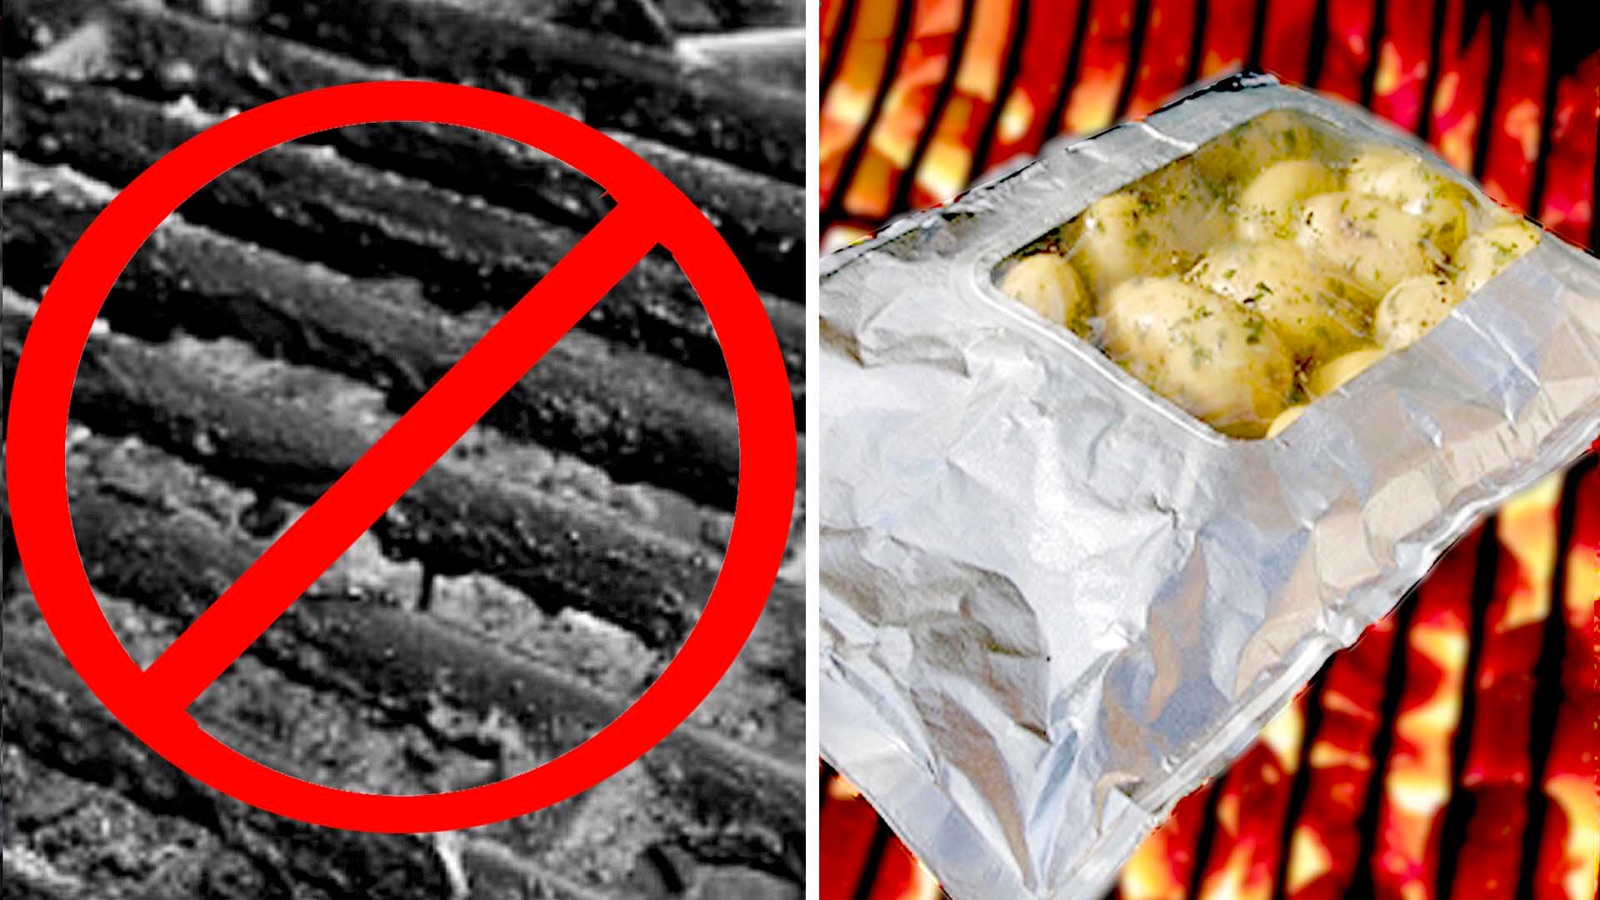 Super Saver Never Clean Your Grill Or Oven Again